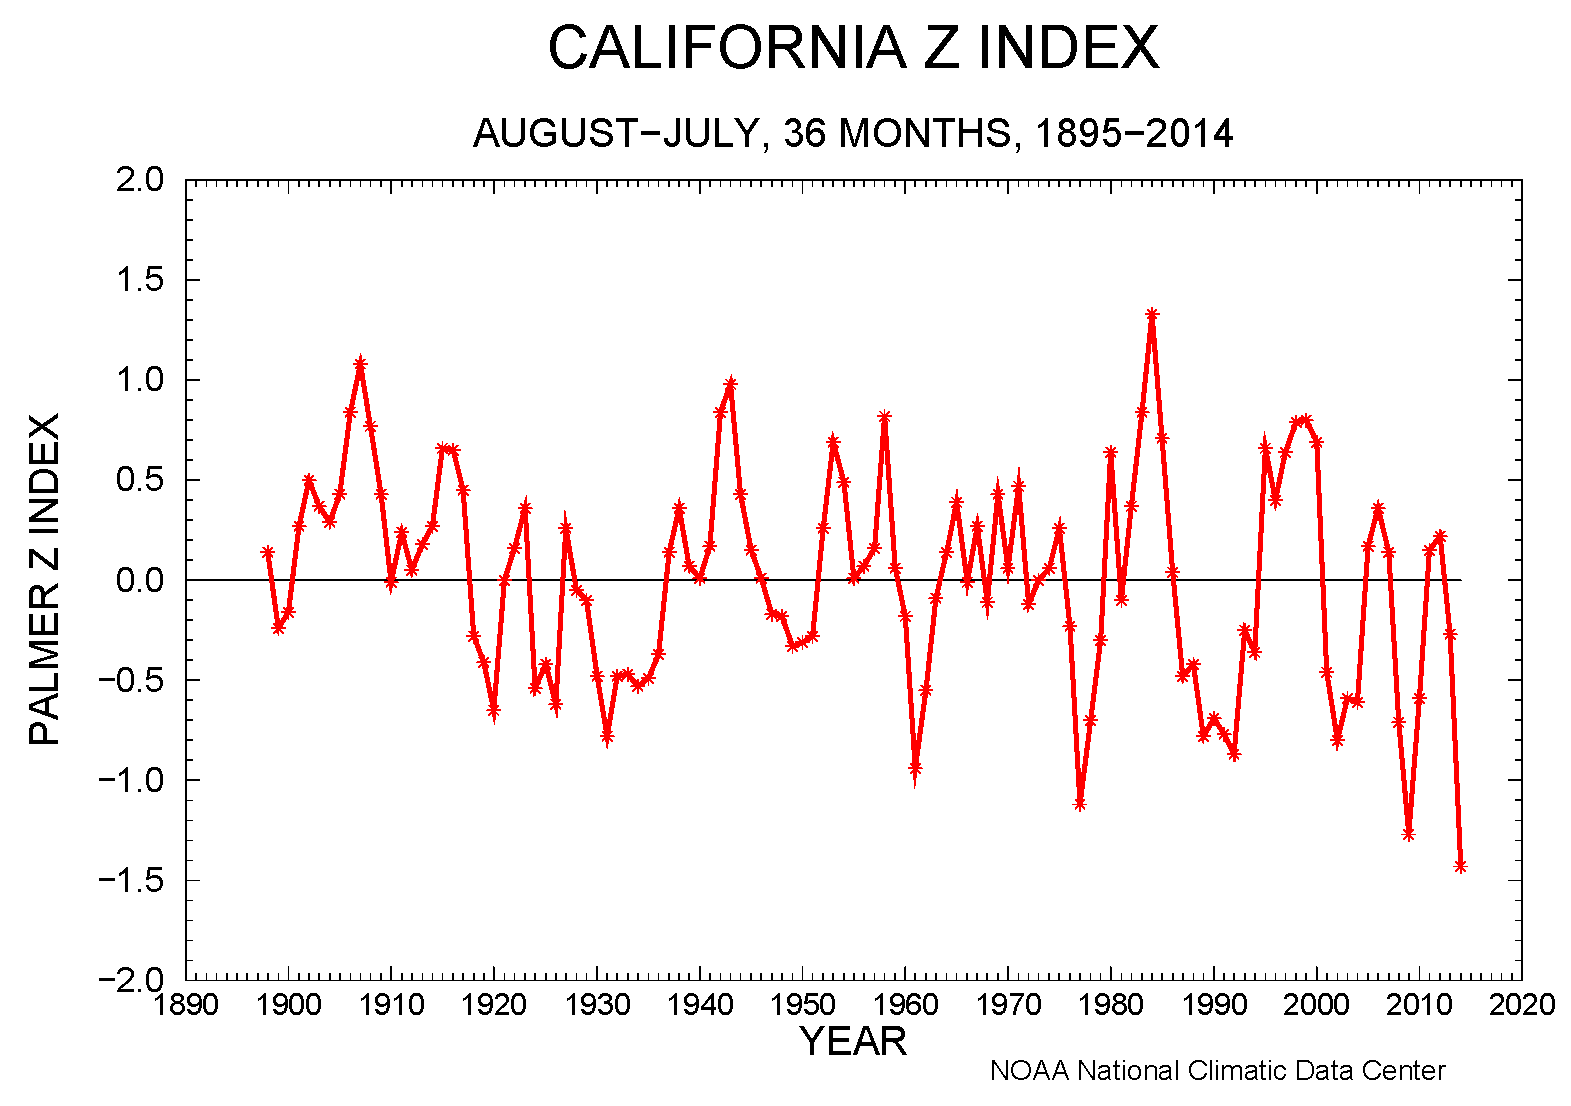 California statewide Palmer Z Index, 36 months, August-July, 1895-2014